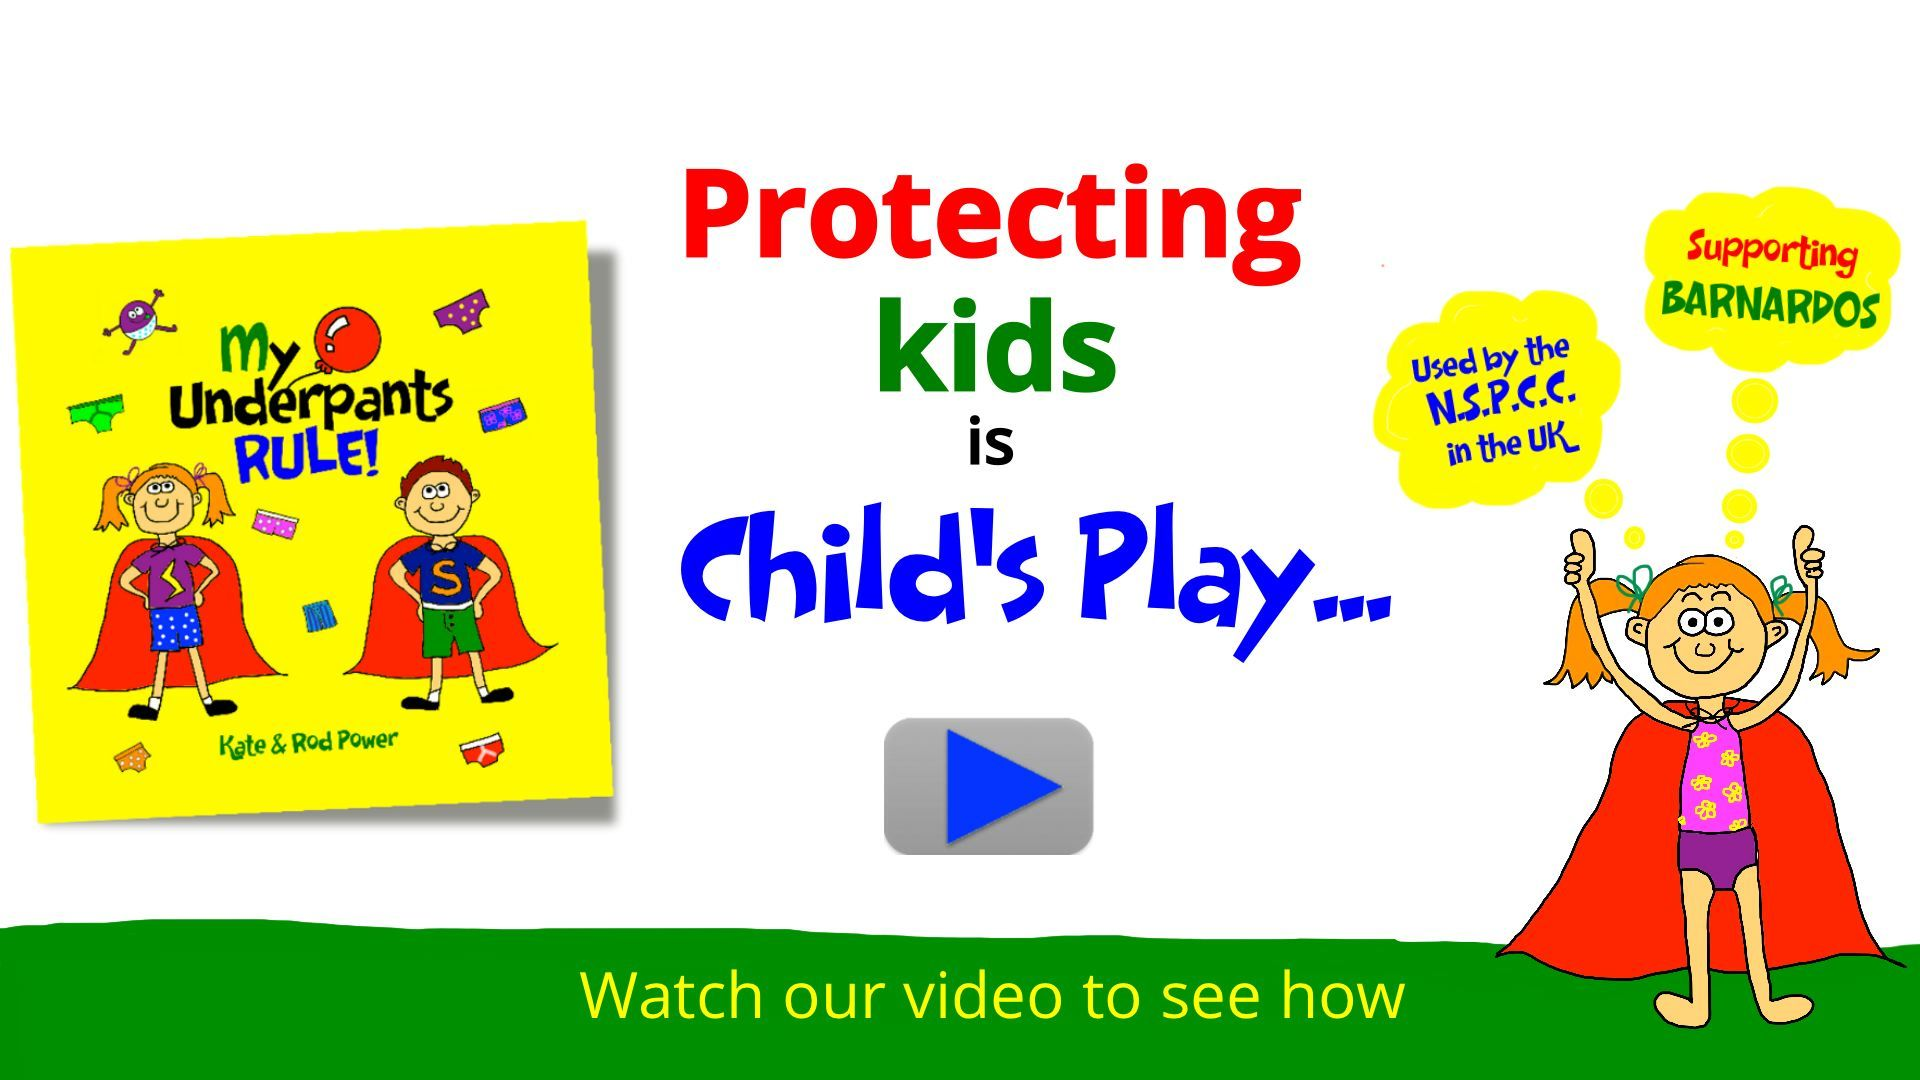 Underpants Rule Child Protection My Underpants Rule Child Protection Child Care Resources Kids Safe